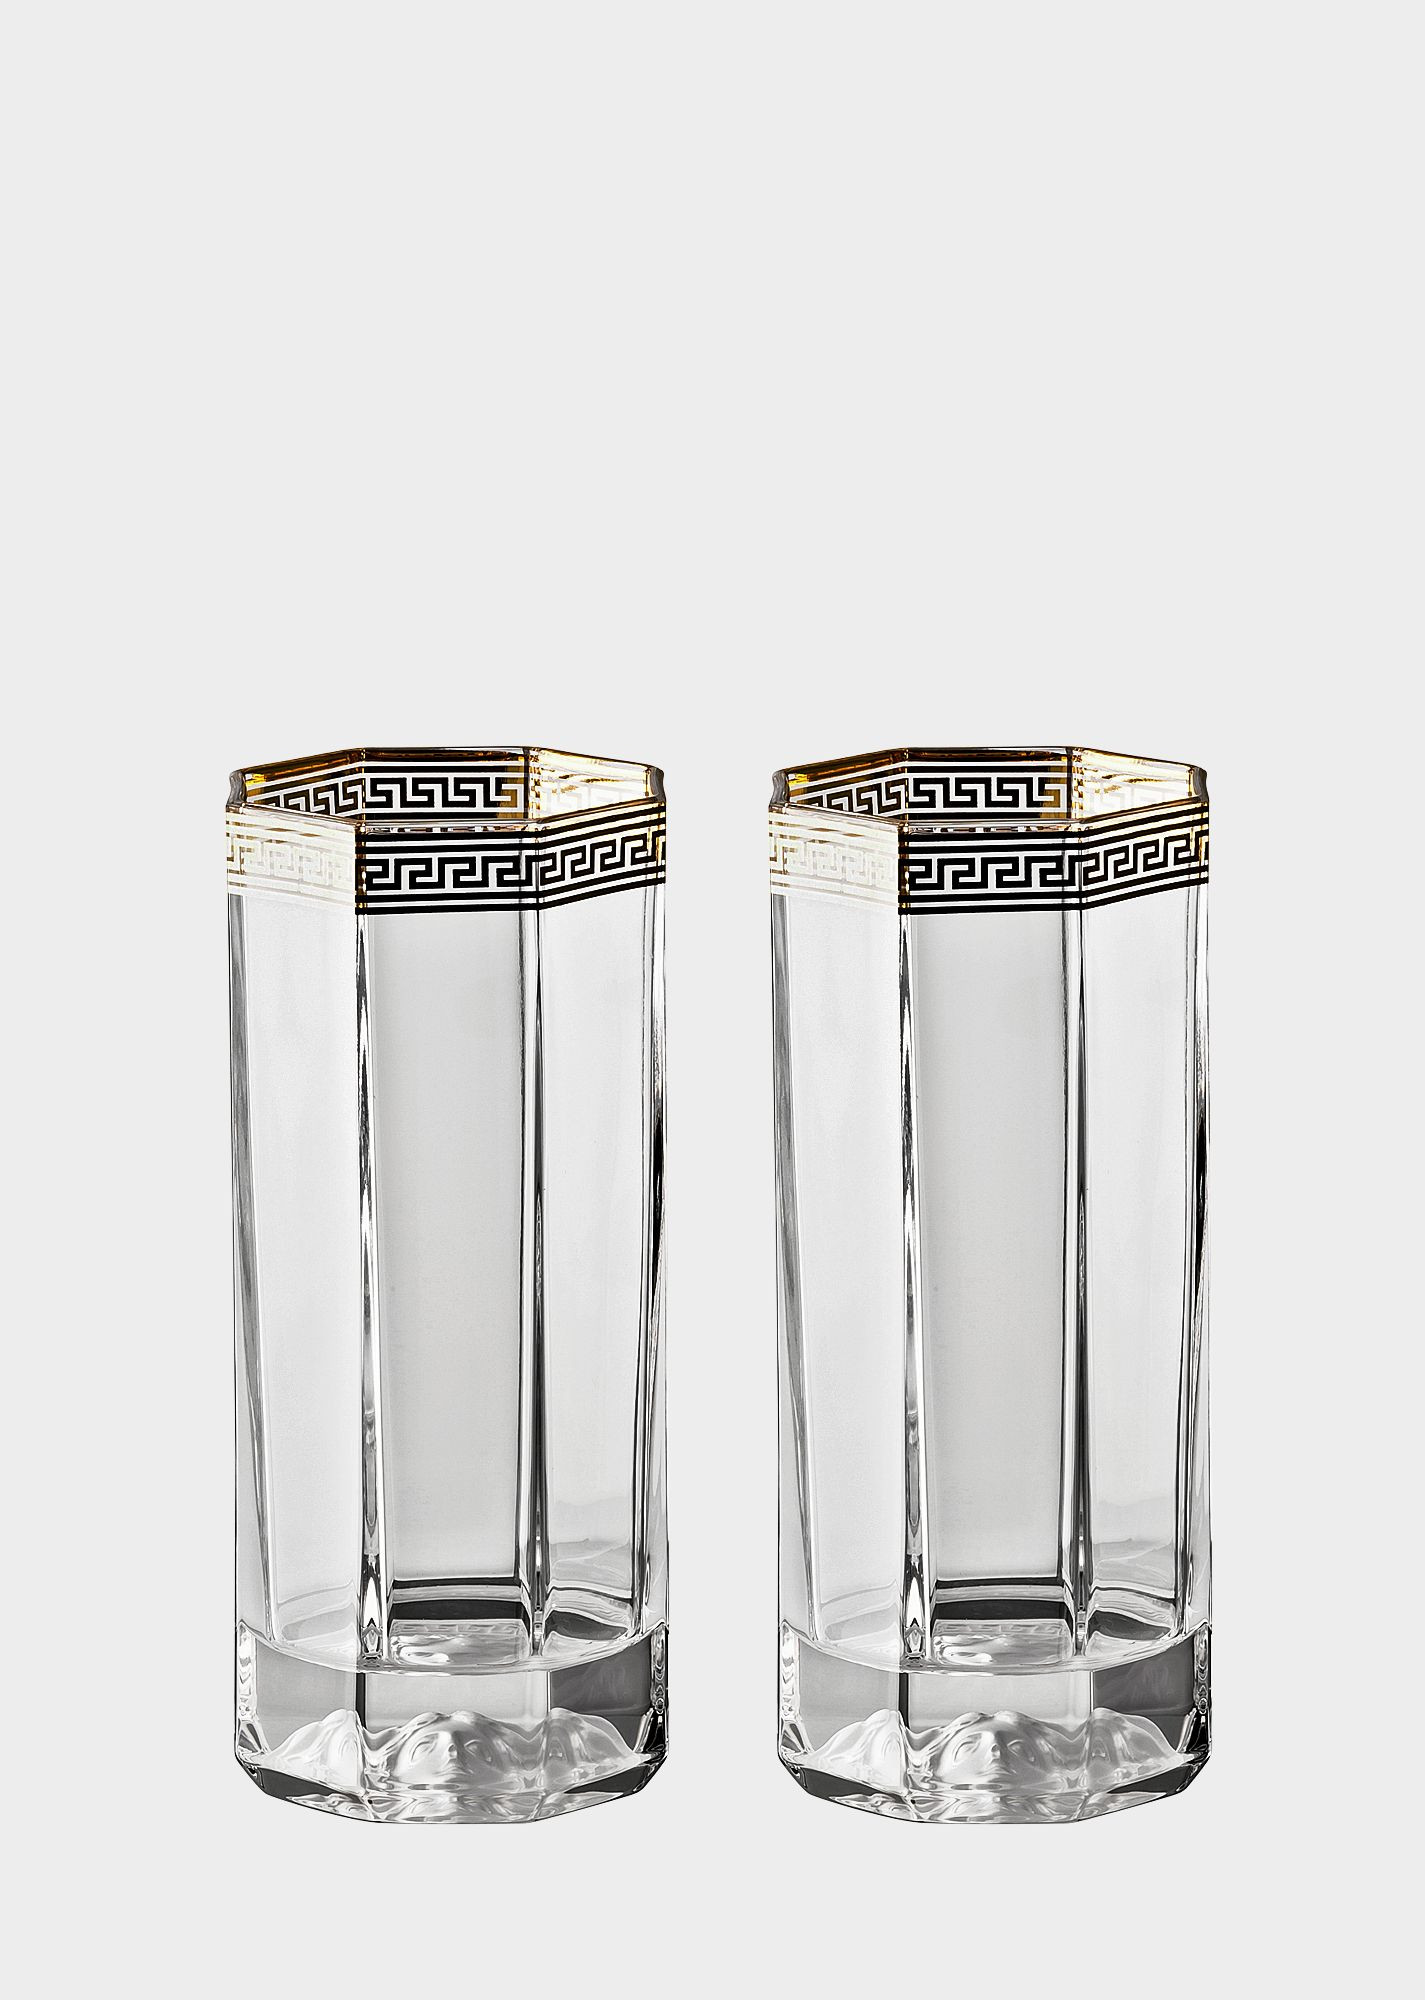 Tall Thick Glass Vase Of 21 Crystal Glass Vase the Weekly World Regarding Versace Home Luxury Glass Crystal